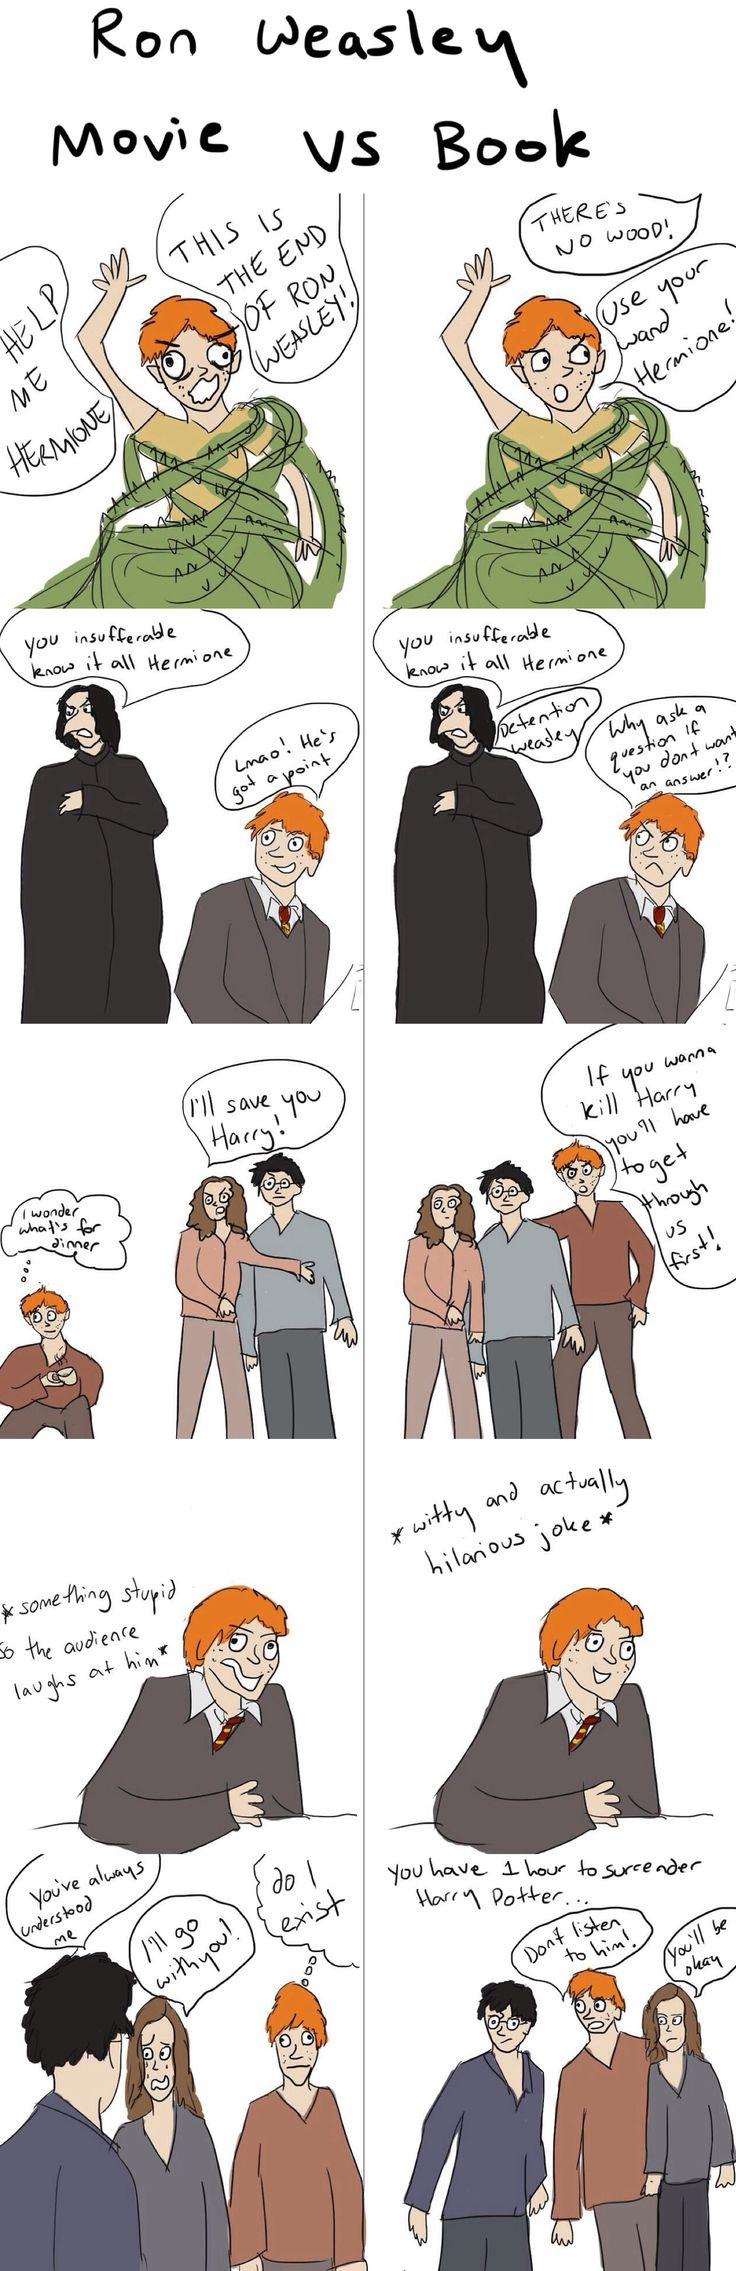 I really do love Rupert Grint as the actor, but the movies sure diminished Ron's character.